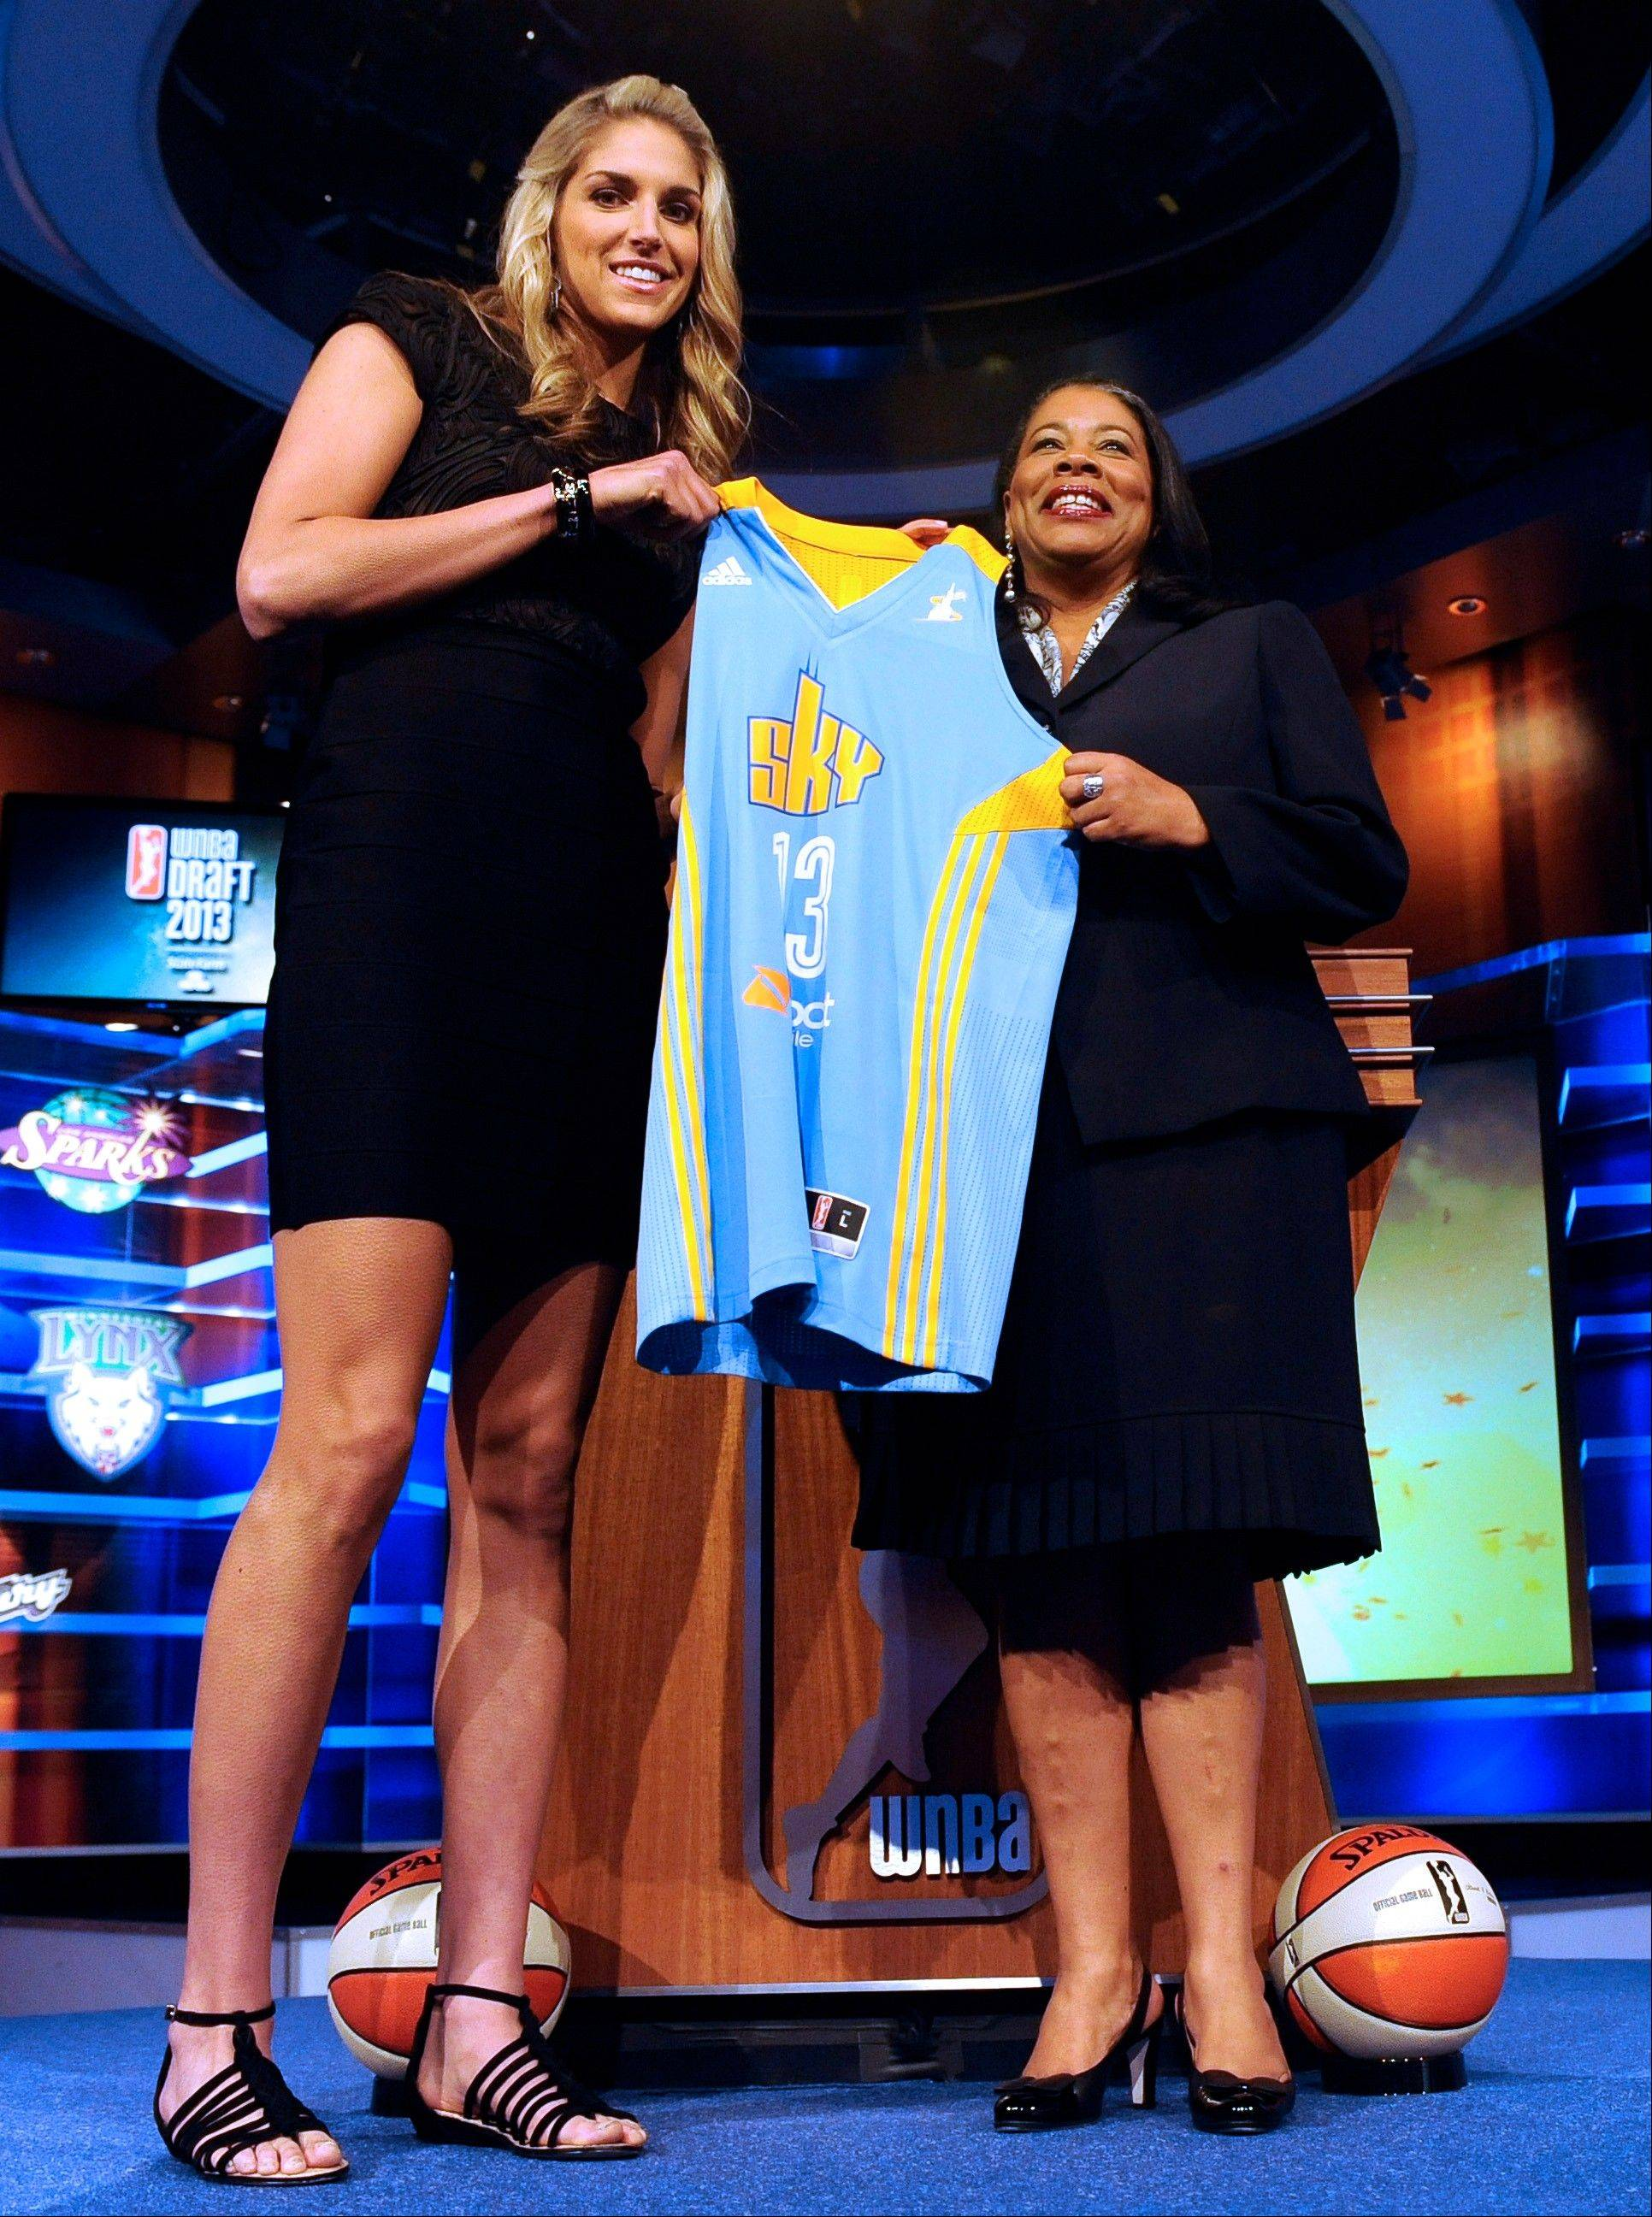 With WNBA president Laurel J. Richie at her side, Delaware's Elena Delle Donne holds up a Chicago Sky jersey after being selected as the No. 2 pick in the draft Monday night.